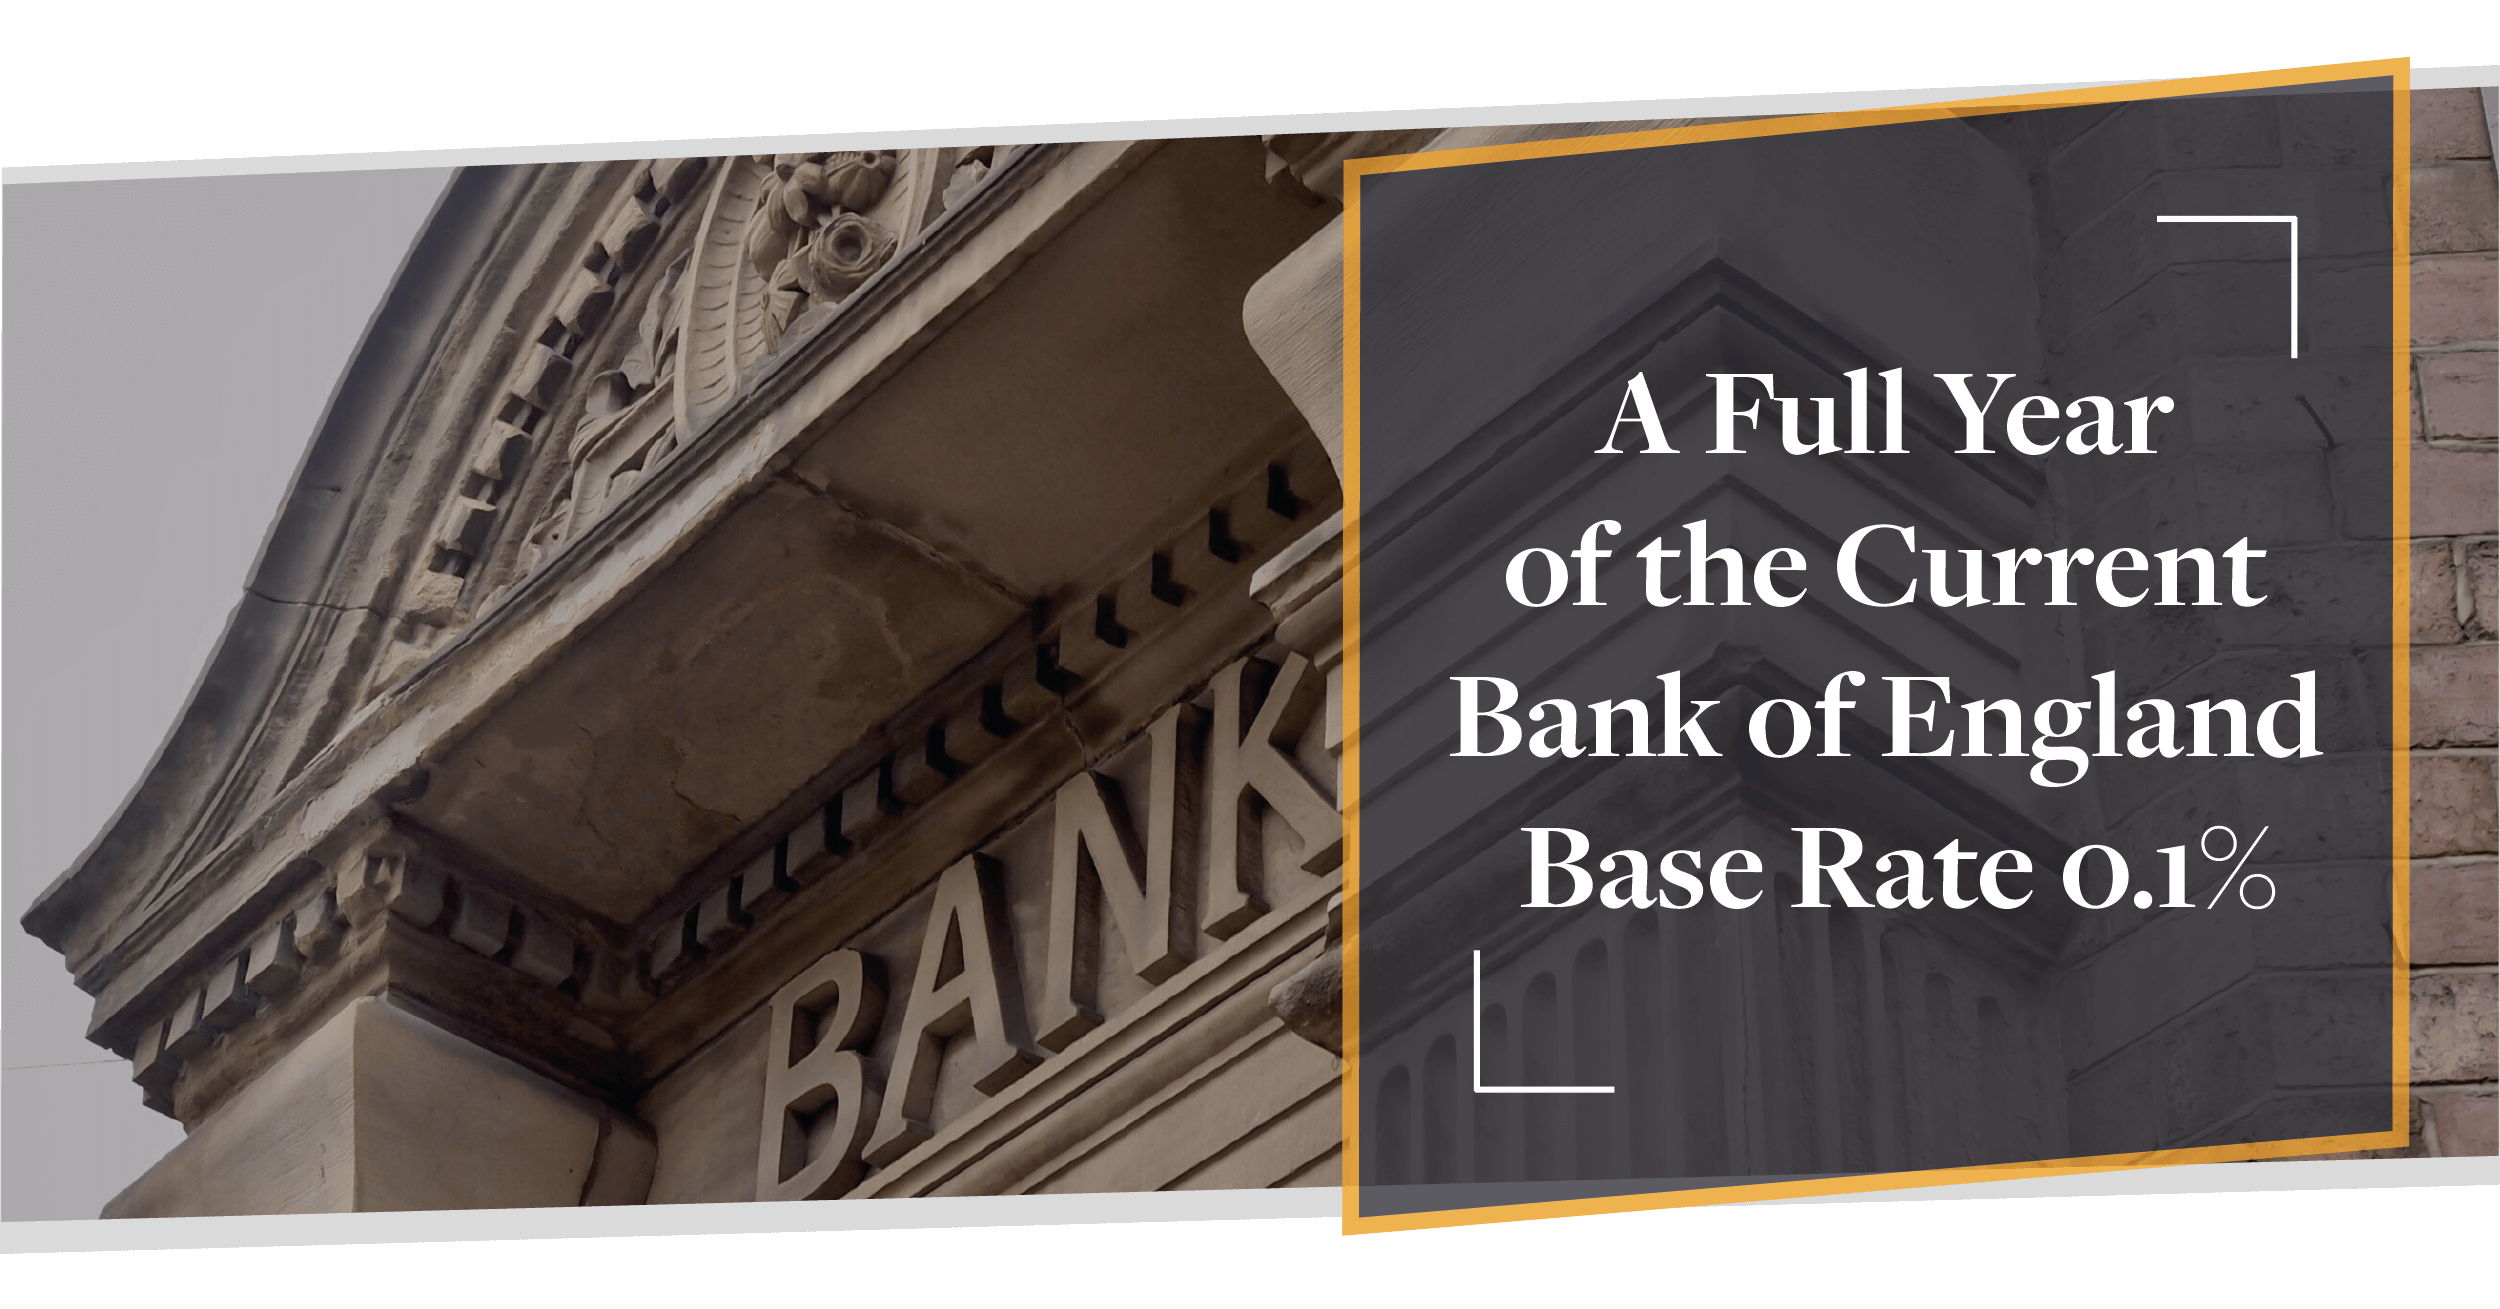 A Full Year of the Current Bank of England Base Rate 0.1% | CMME